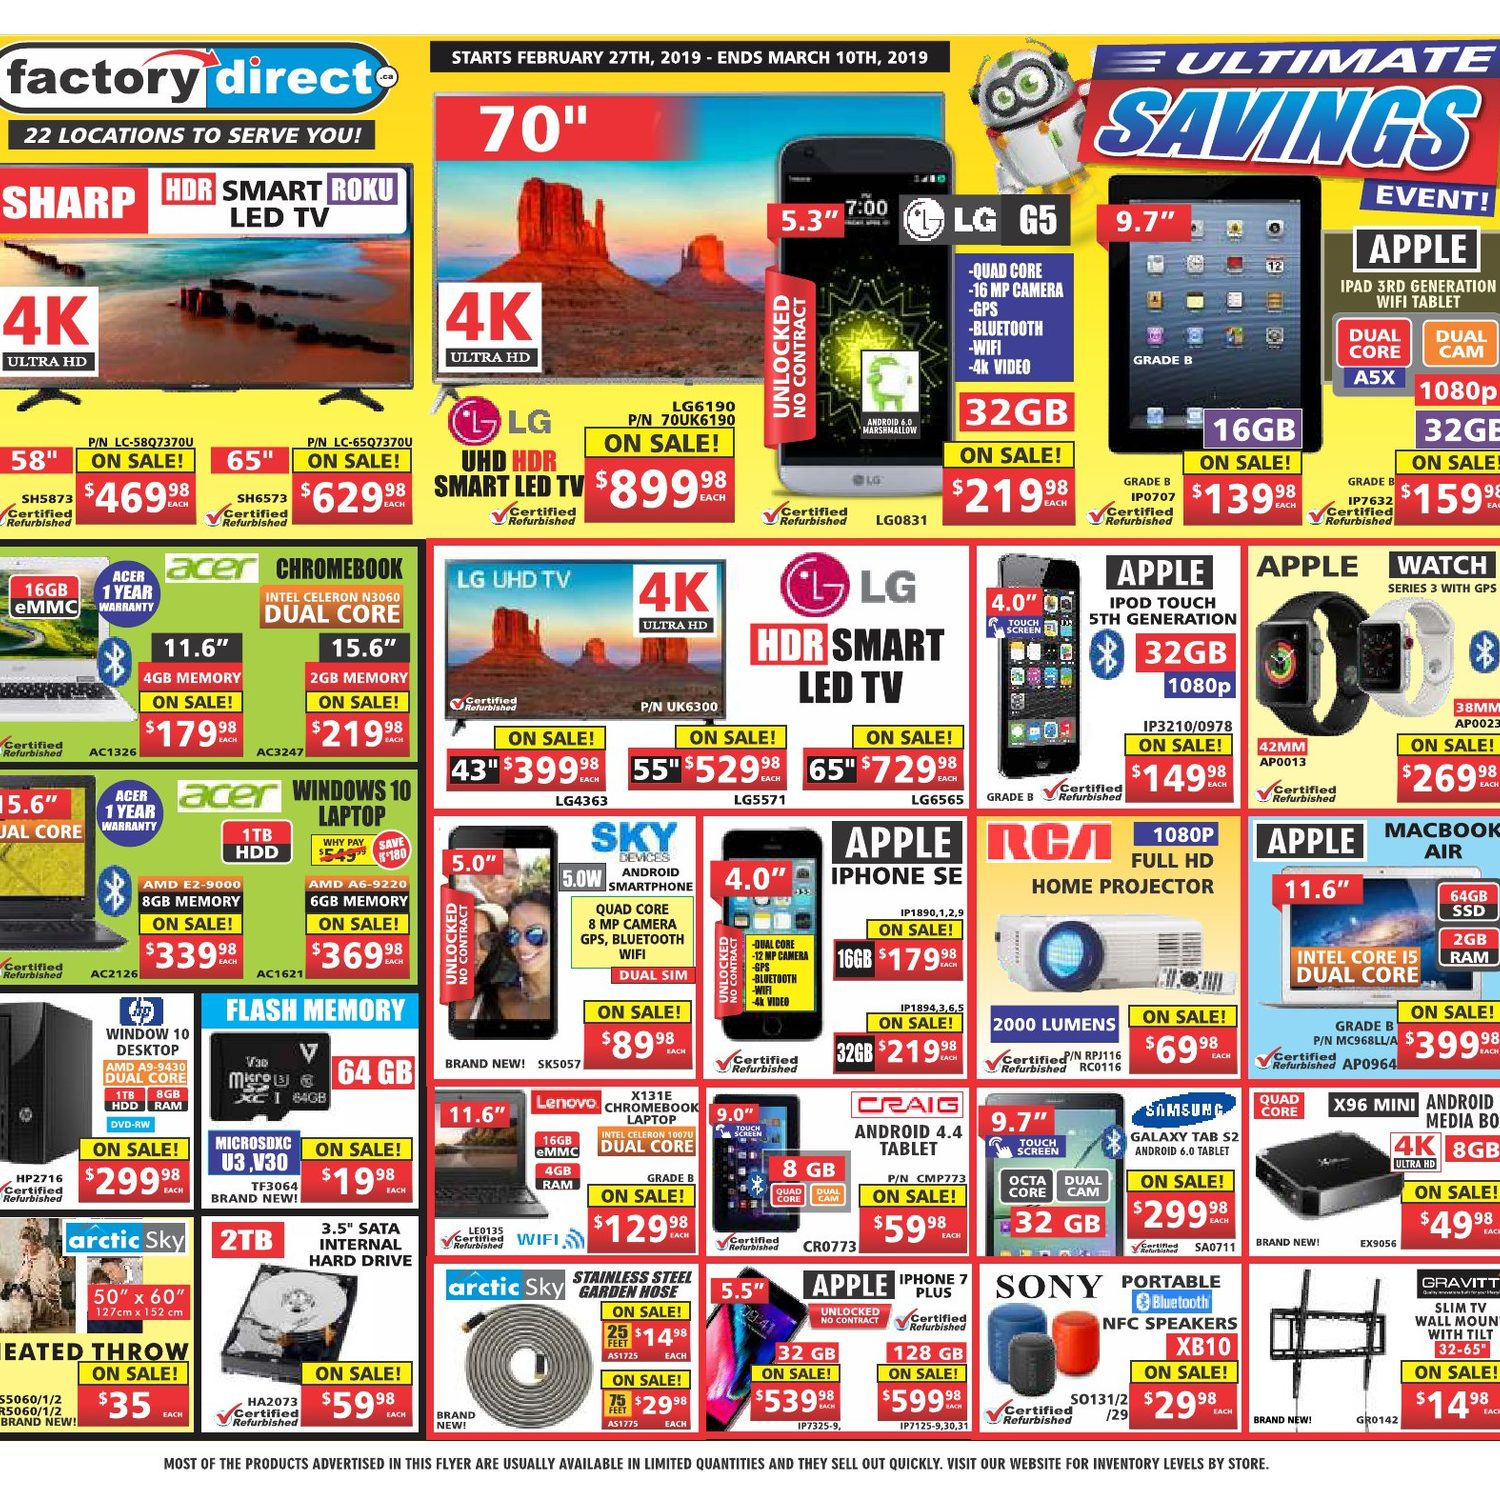 Factory Direct Weekly Flyer - Ultimate Savings Event! - Feb